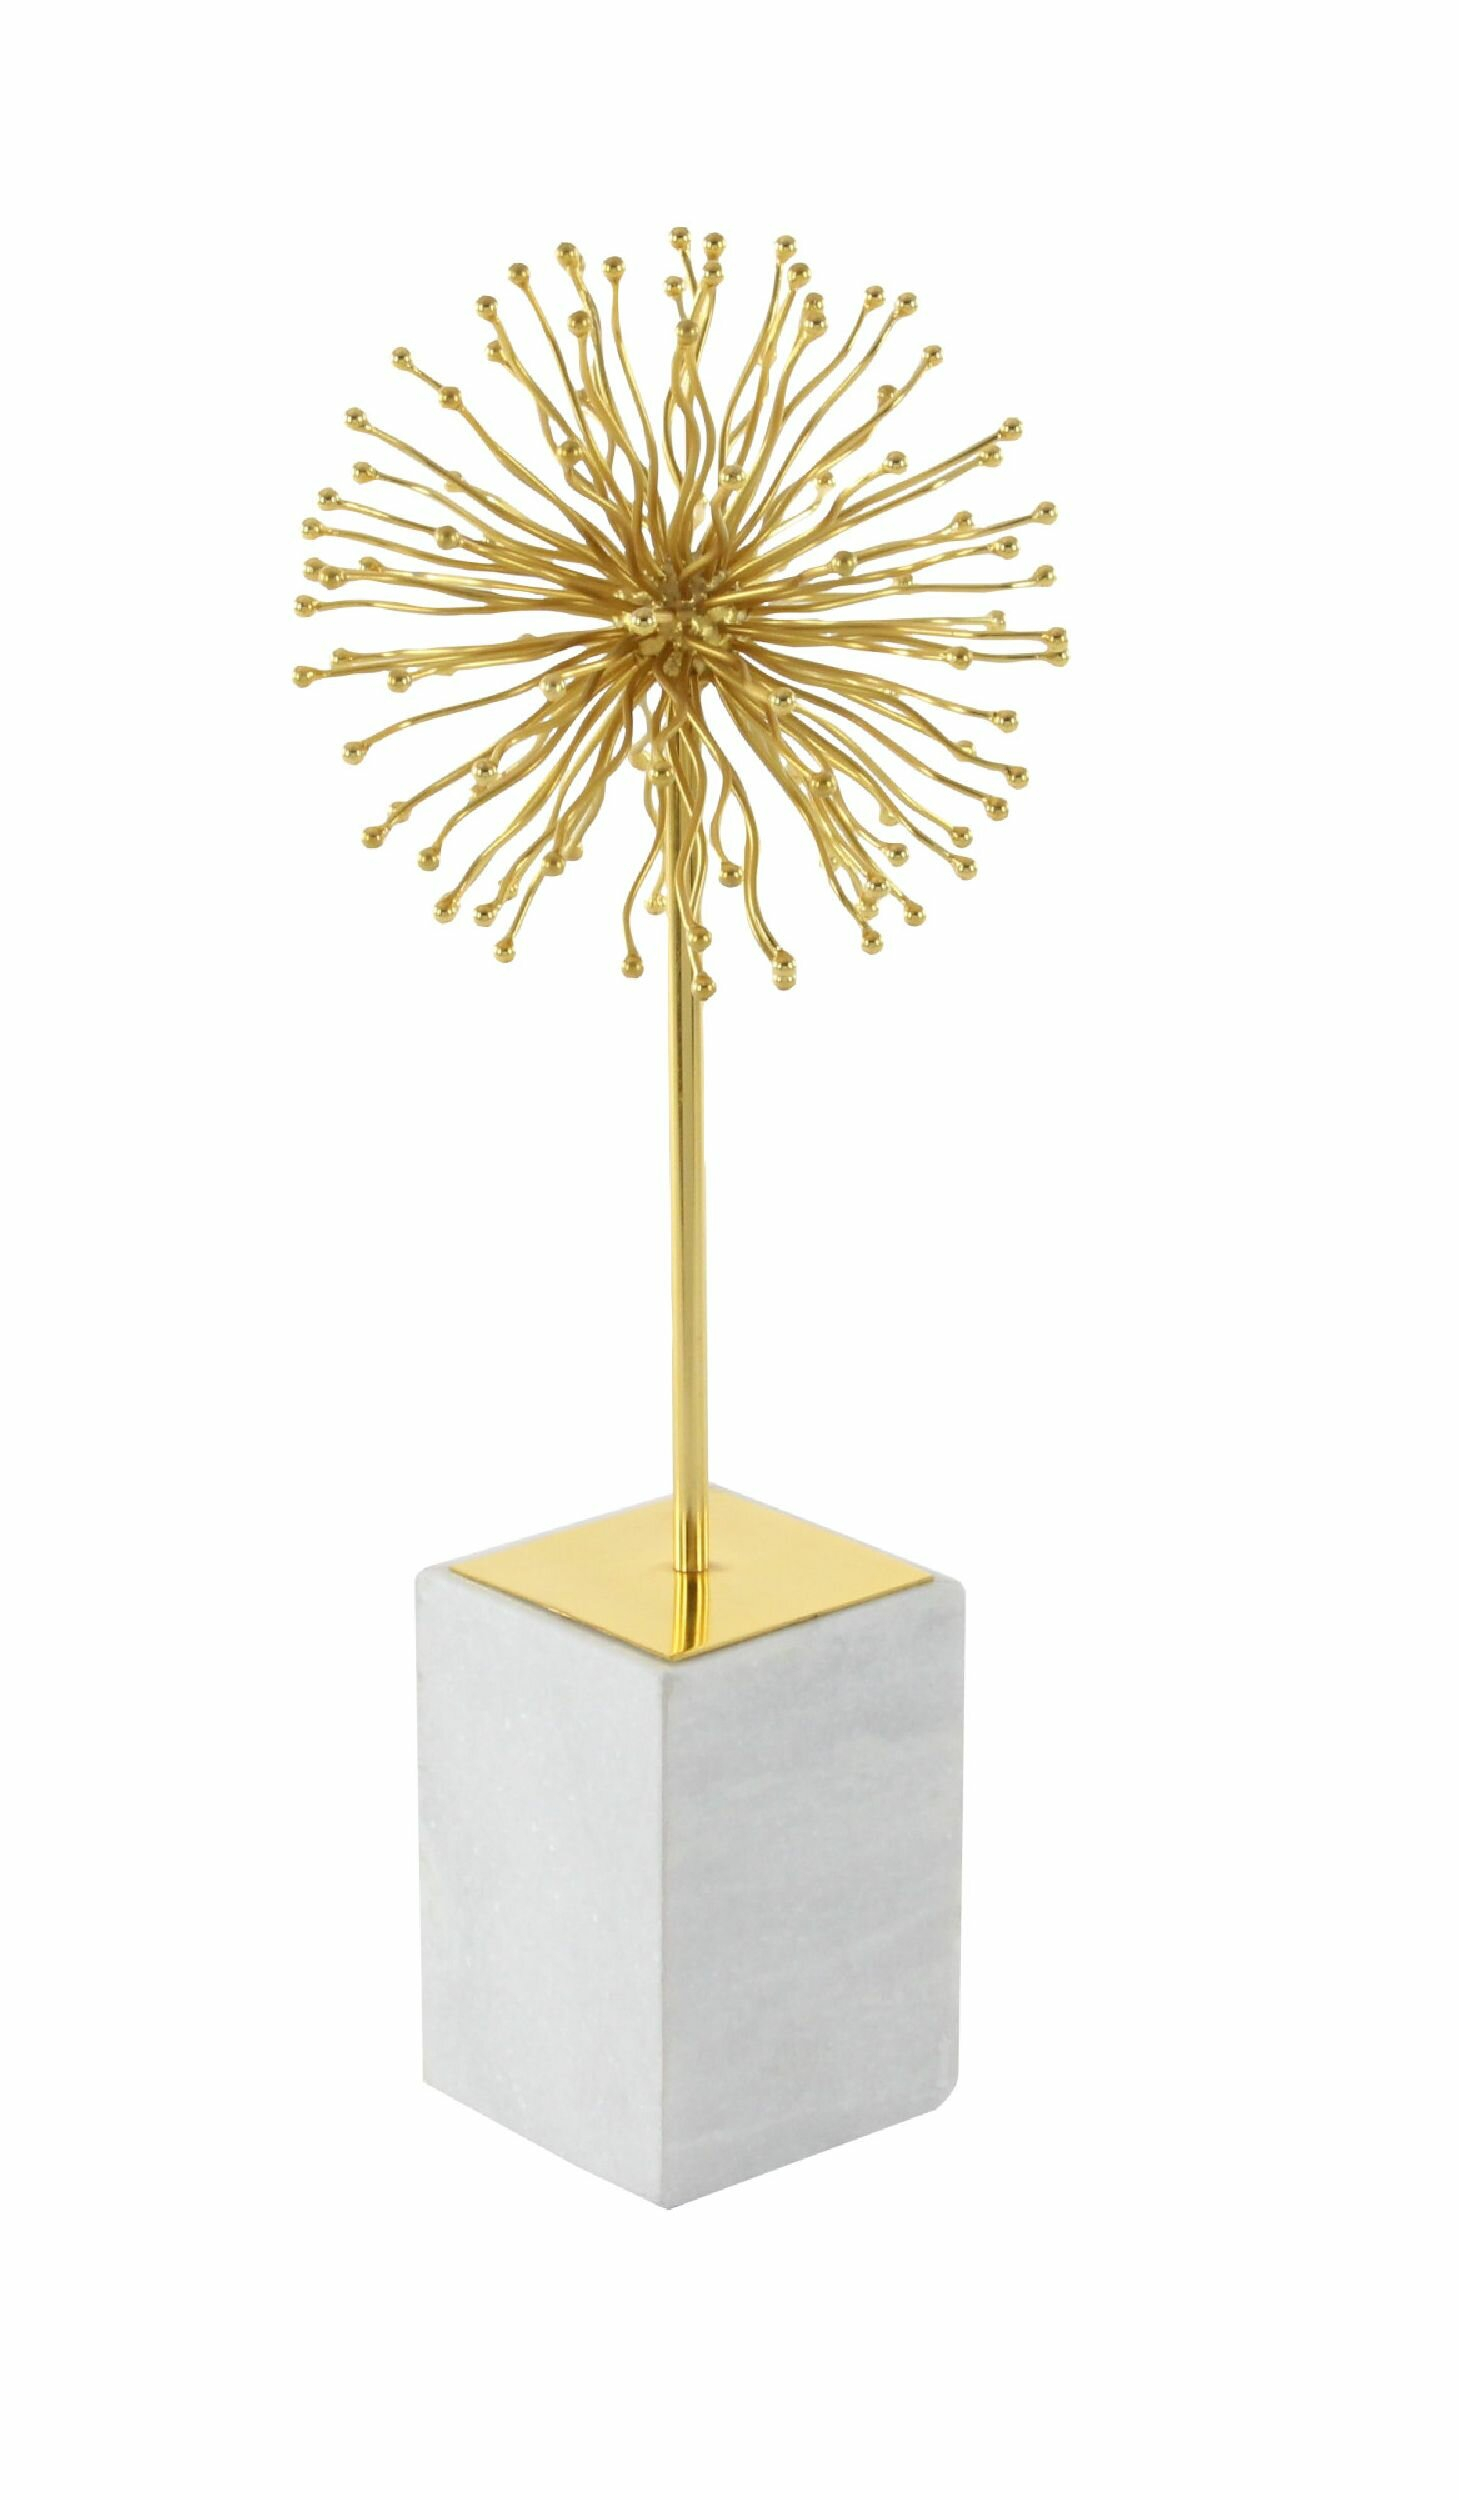 Hungerford Marble Star Sculpture Intended For Set Of 3 Contemporary 6, 9, And 11 Inch Gold Tin Starburst Sculptures (View 7 of 30)